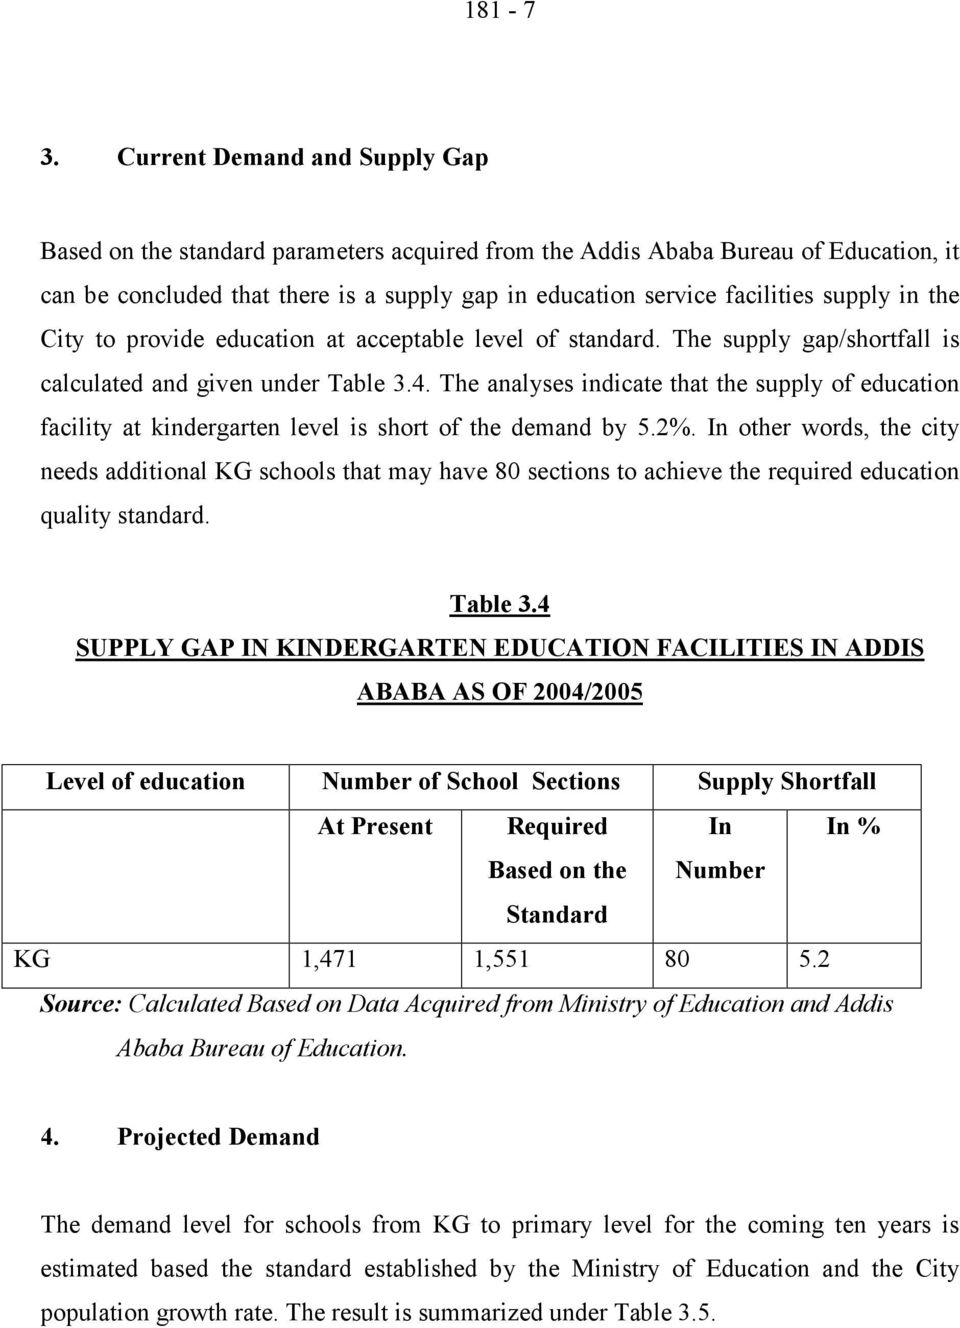 in the City to provide education at acceptable level of standard. The supply gap/shortfall is calculated and given under Table 3.4.